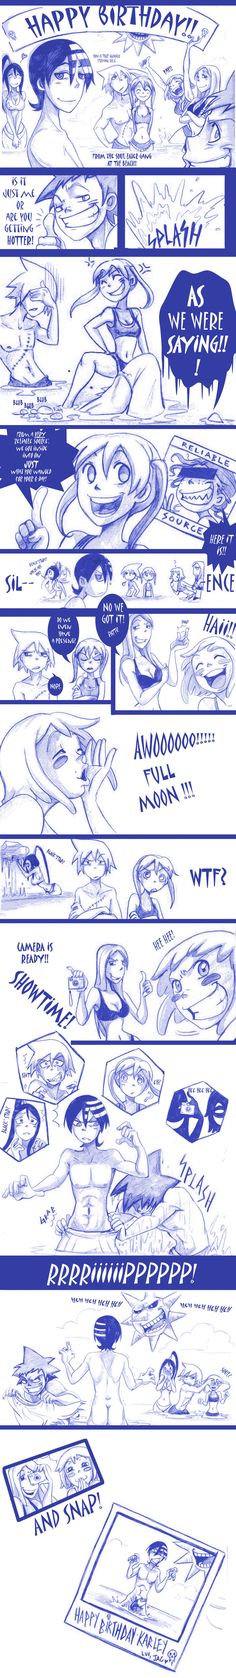 Soul Eater Birthday comic by ElementJax.deviantart.com on @deviantART (HAPPY BIRTHDAY! this made me laugh a little to much!)